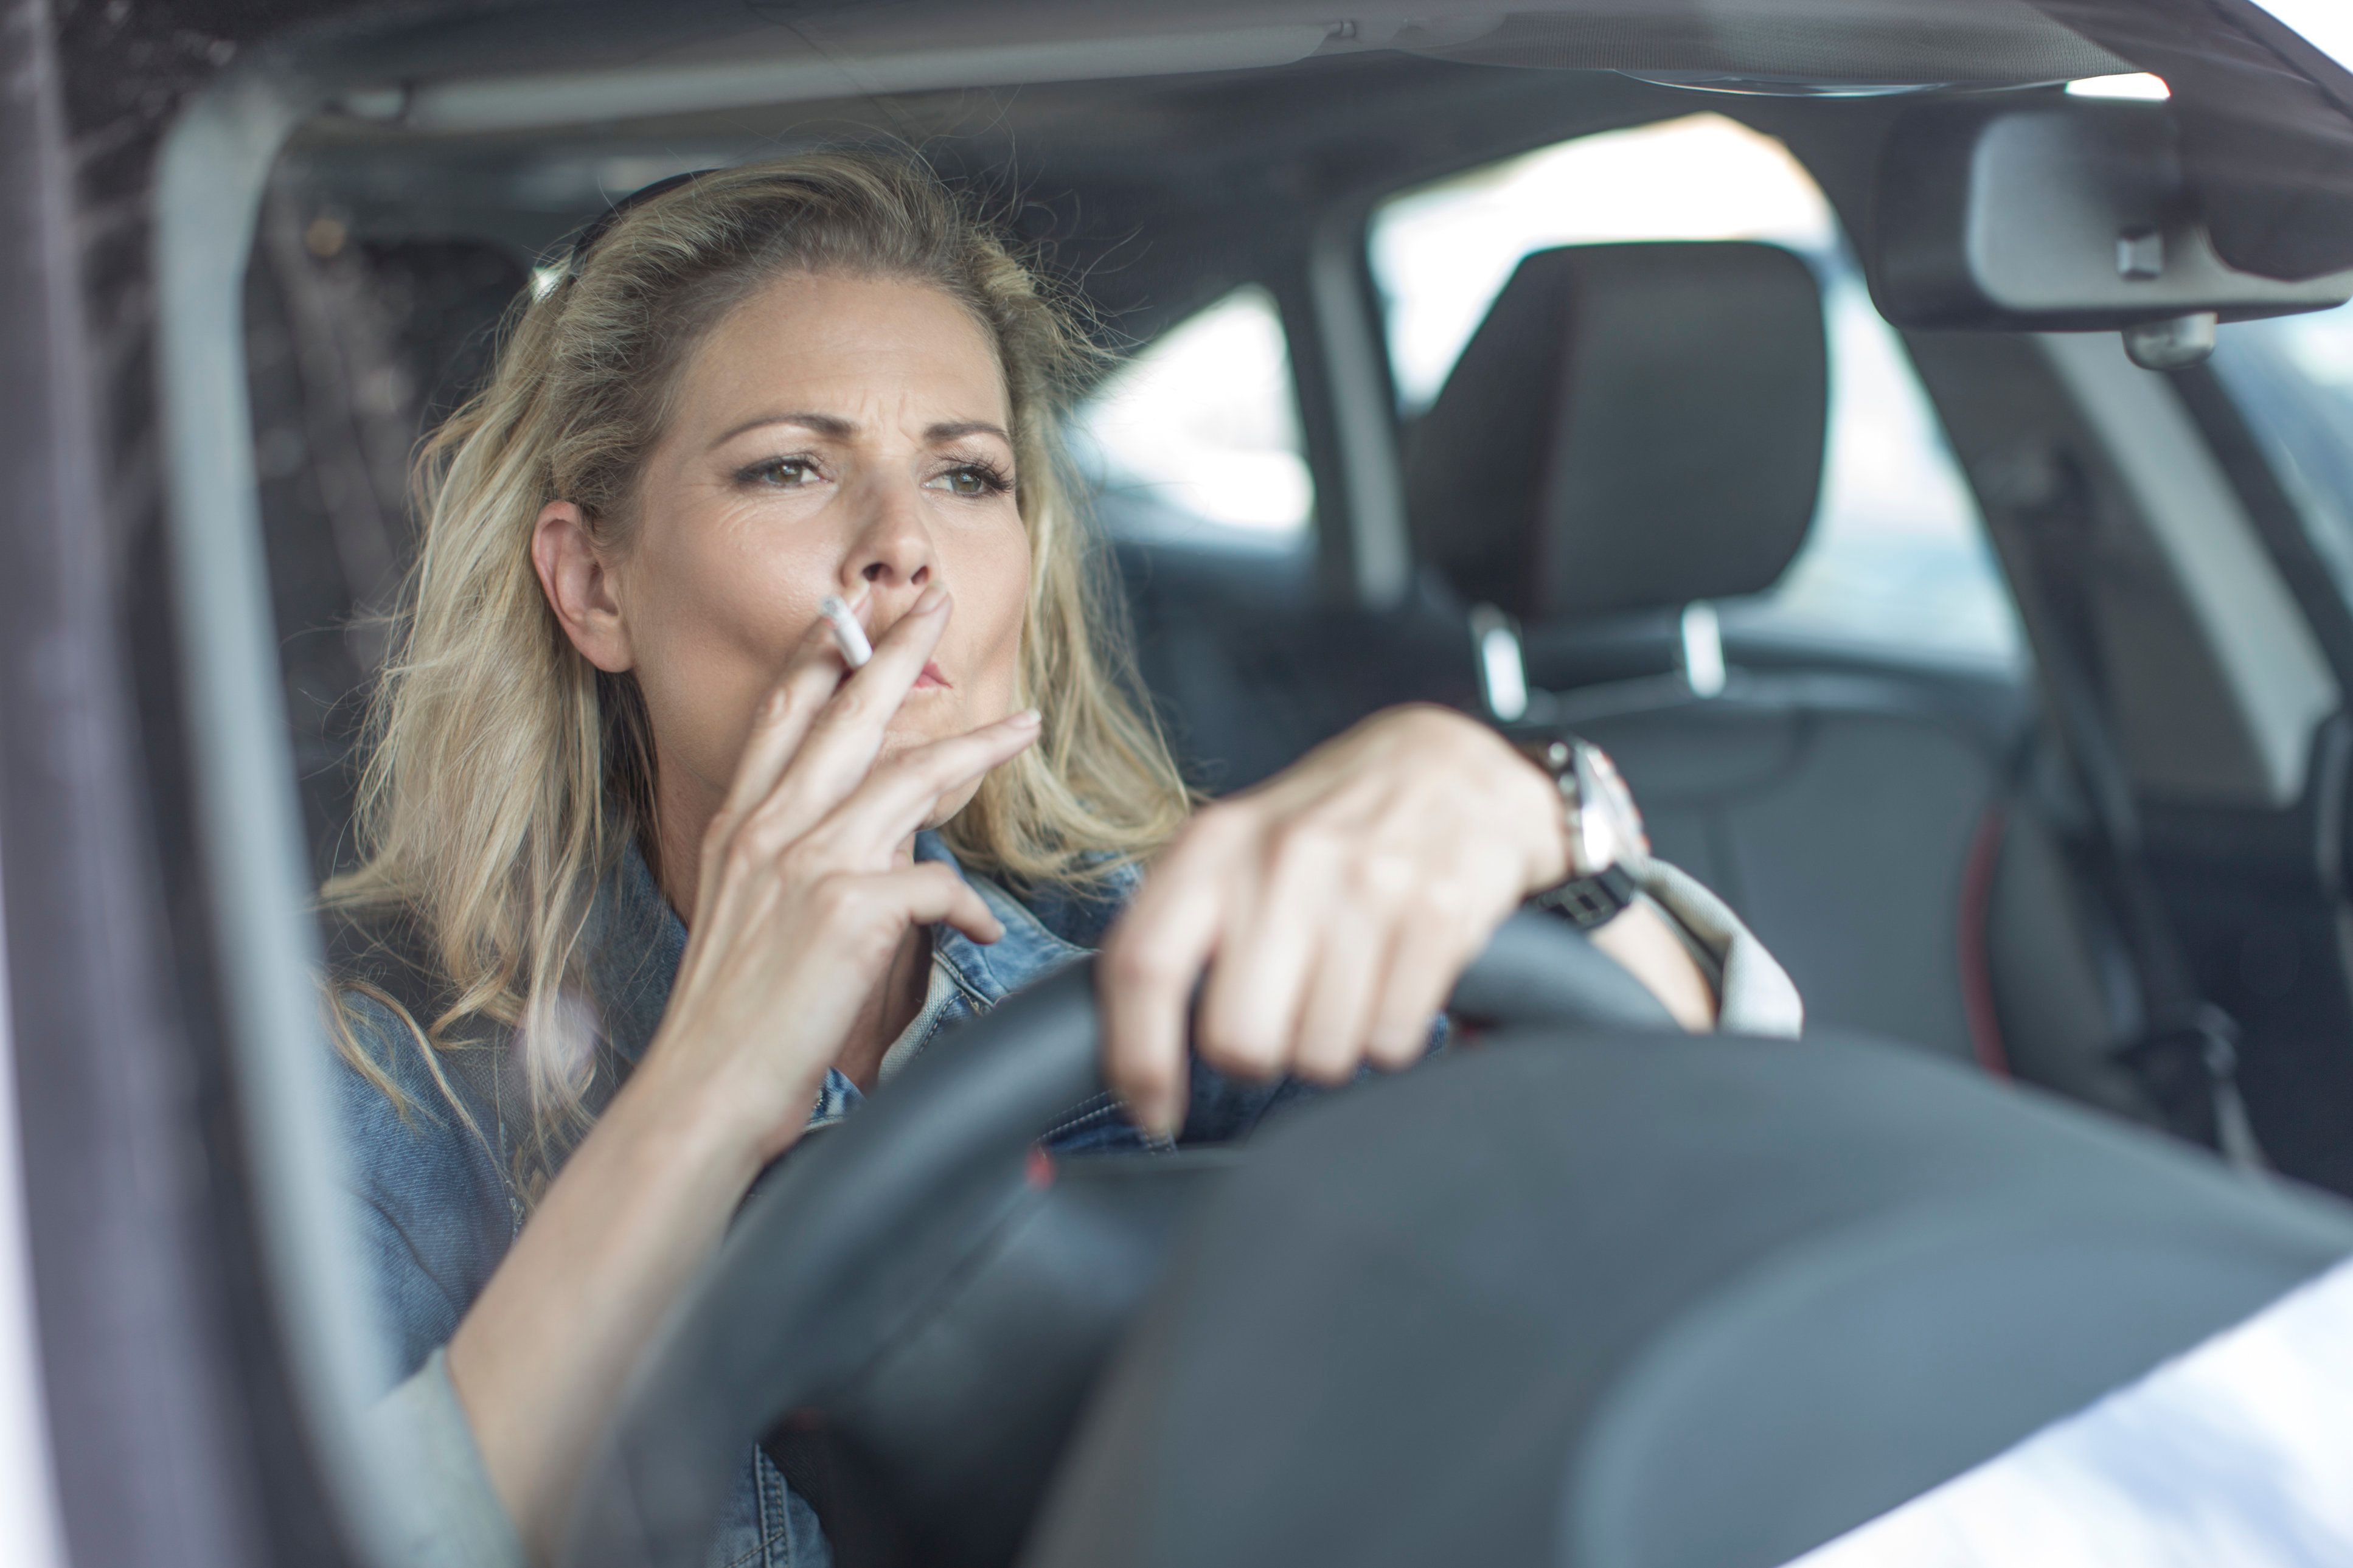 Health Charity Welcomes News That Just One Person Has Been Fined For Smoking In A Car With